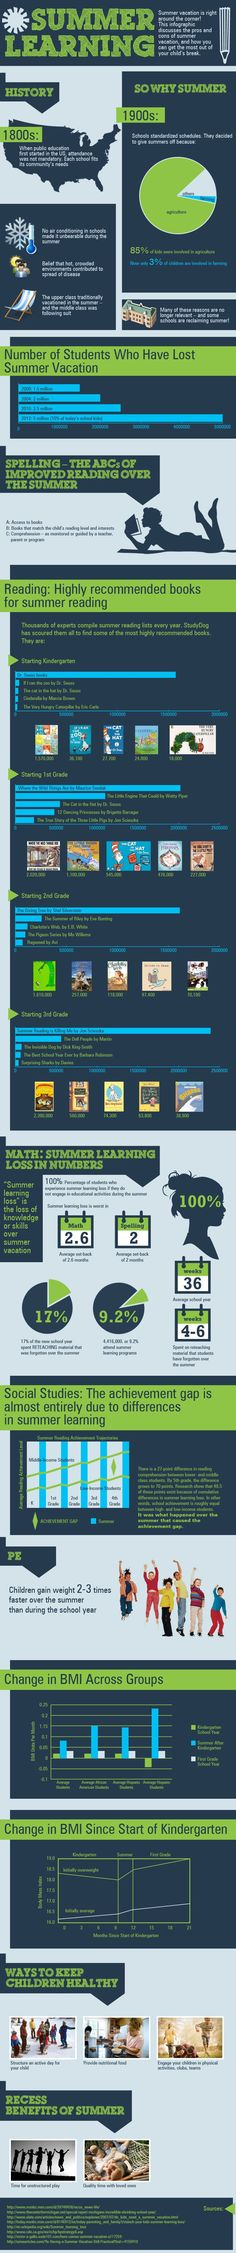 Summer learning and reading infographic. #summerlearning and #sweepstakes